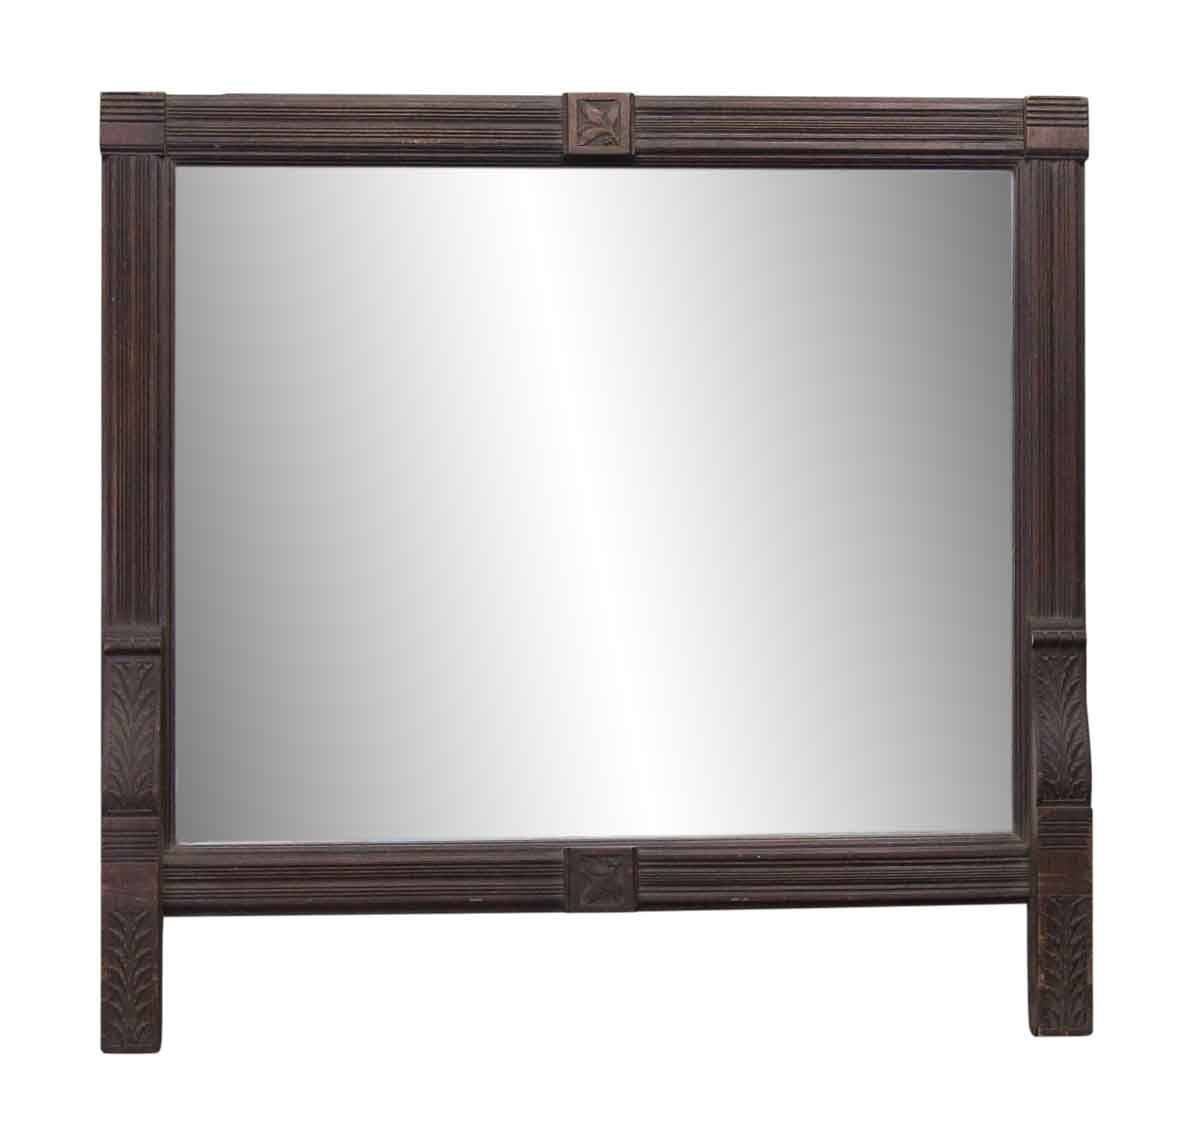 Large handmade wooden mantel mirror olde good things for Mantel mirrors